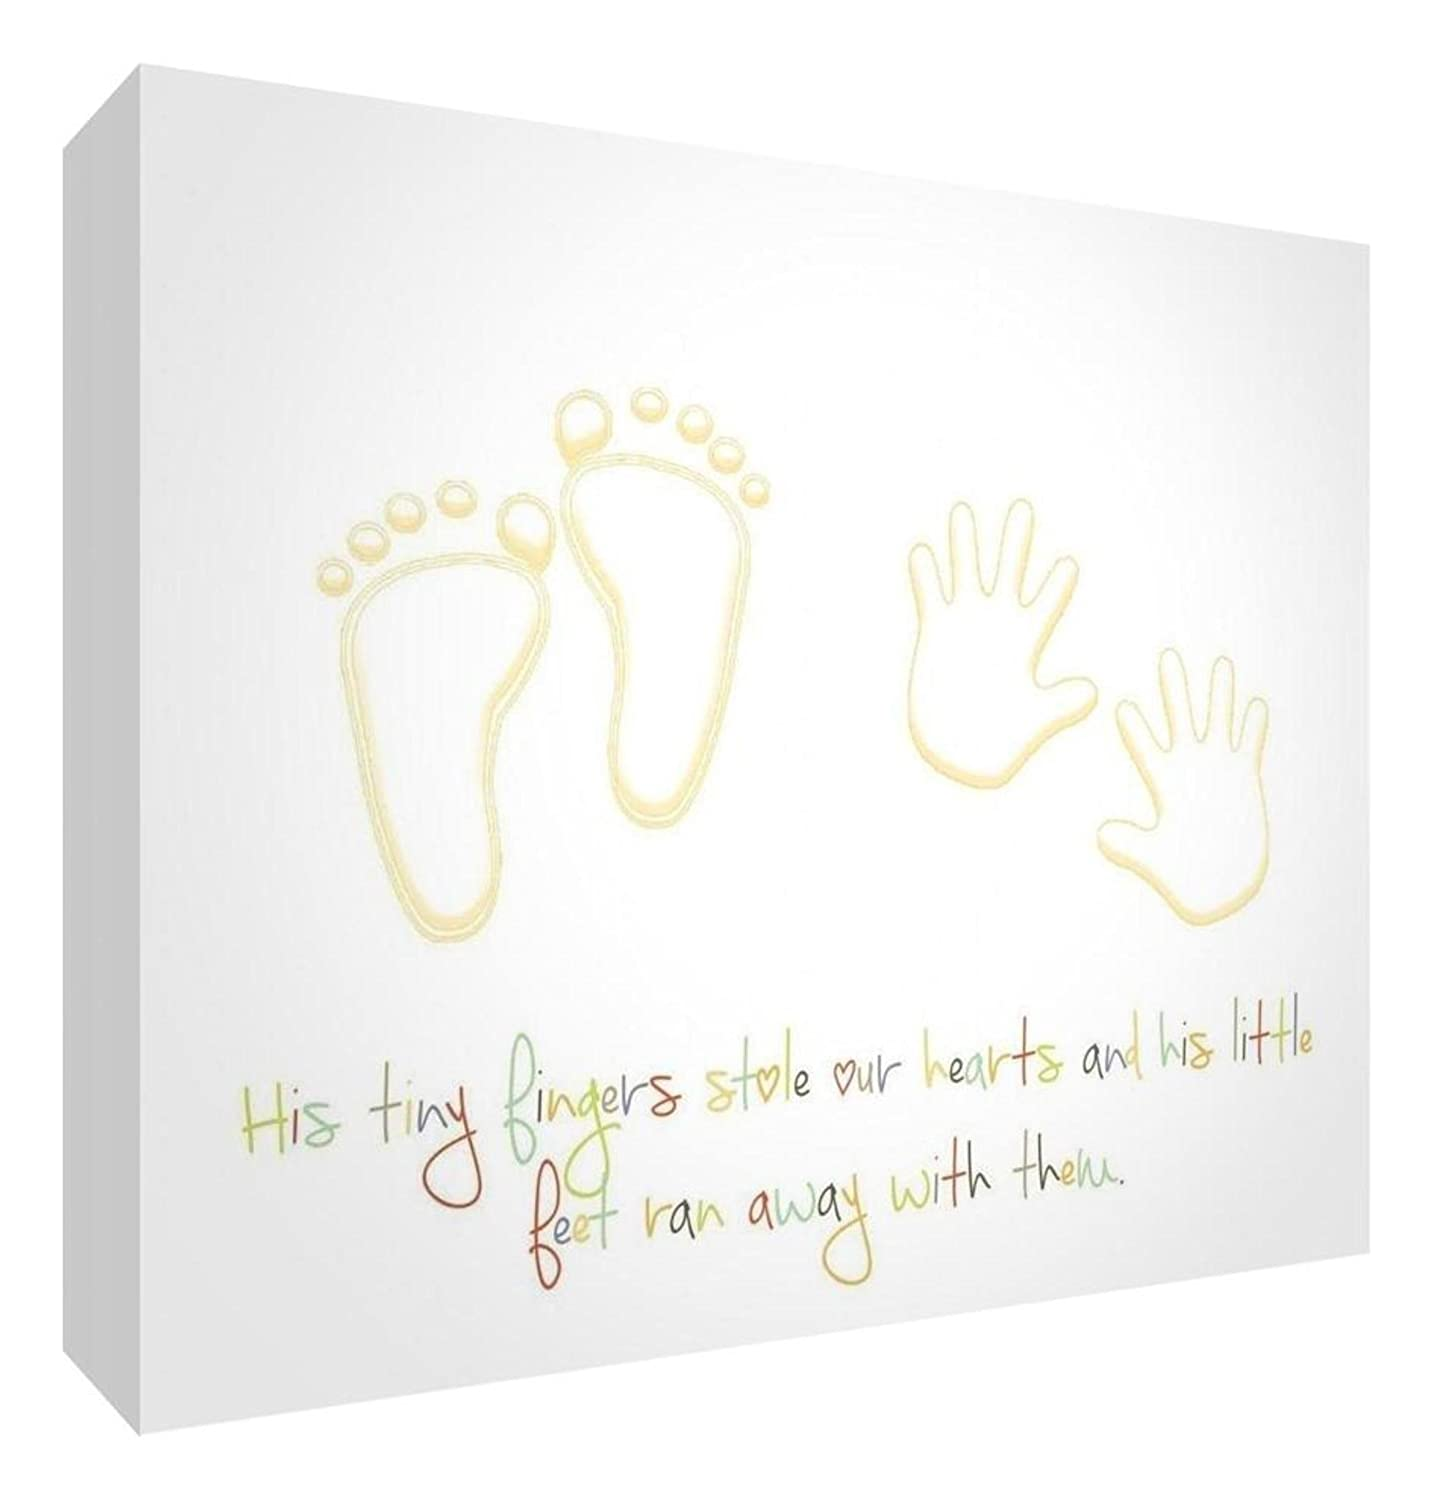 Feel Good Art Gallery Wrapped Nursery Canvas in Modern Design (20 x 30 x 3 cm, Small, Beige/Neutrals, His Little Feet Stole our Hearts) Little Helper Ltd BOYHEARTFEET128-01